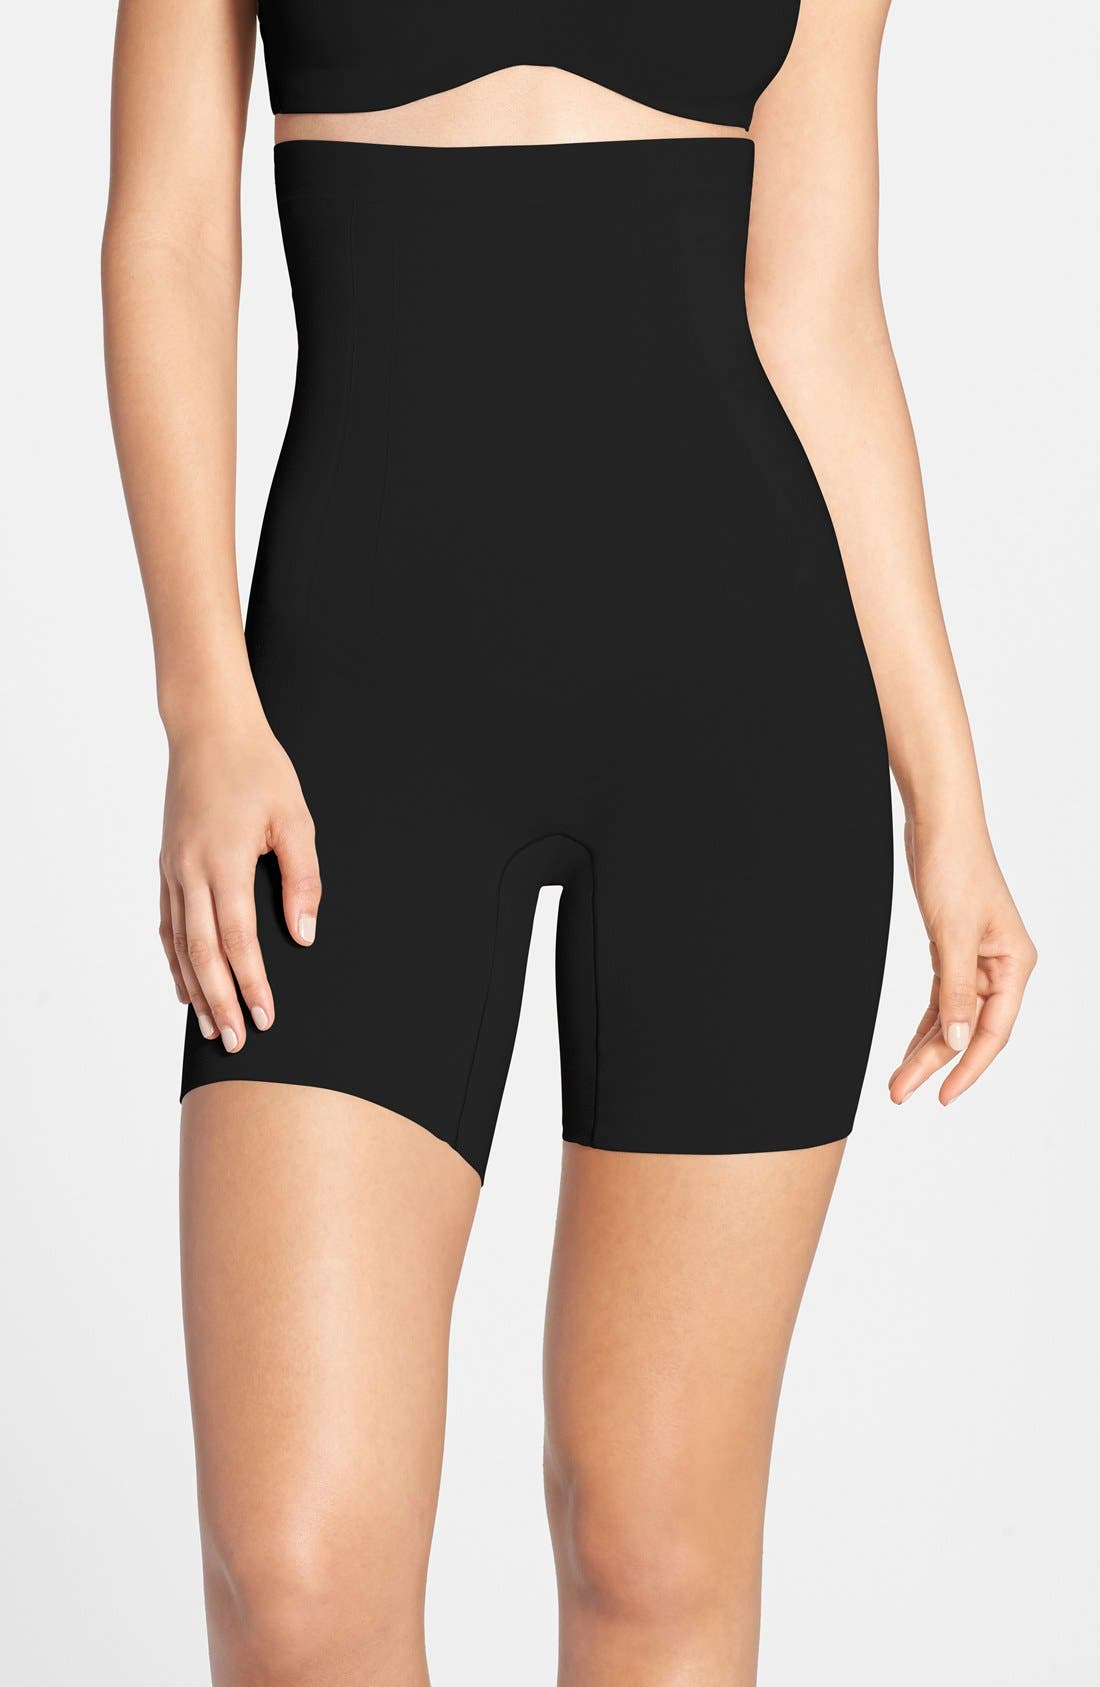 Alternate Image 1 Selected - SPANX® Oncore High Waist Mid Thigh Shaper